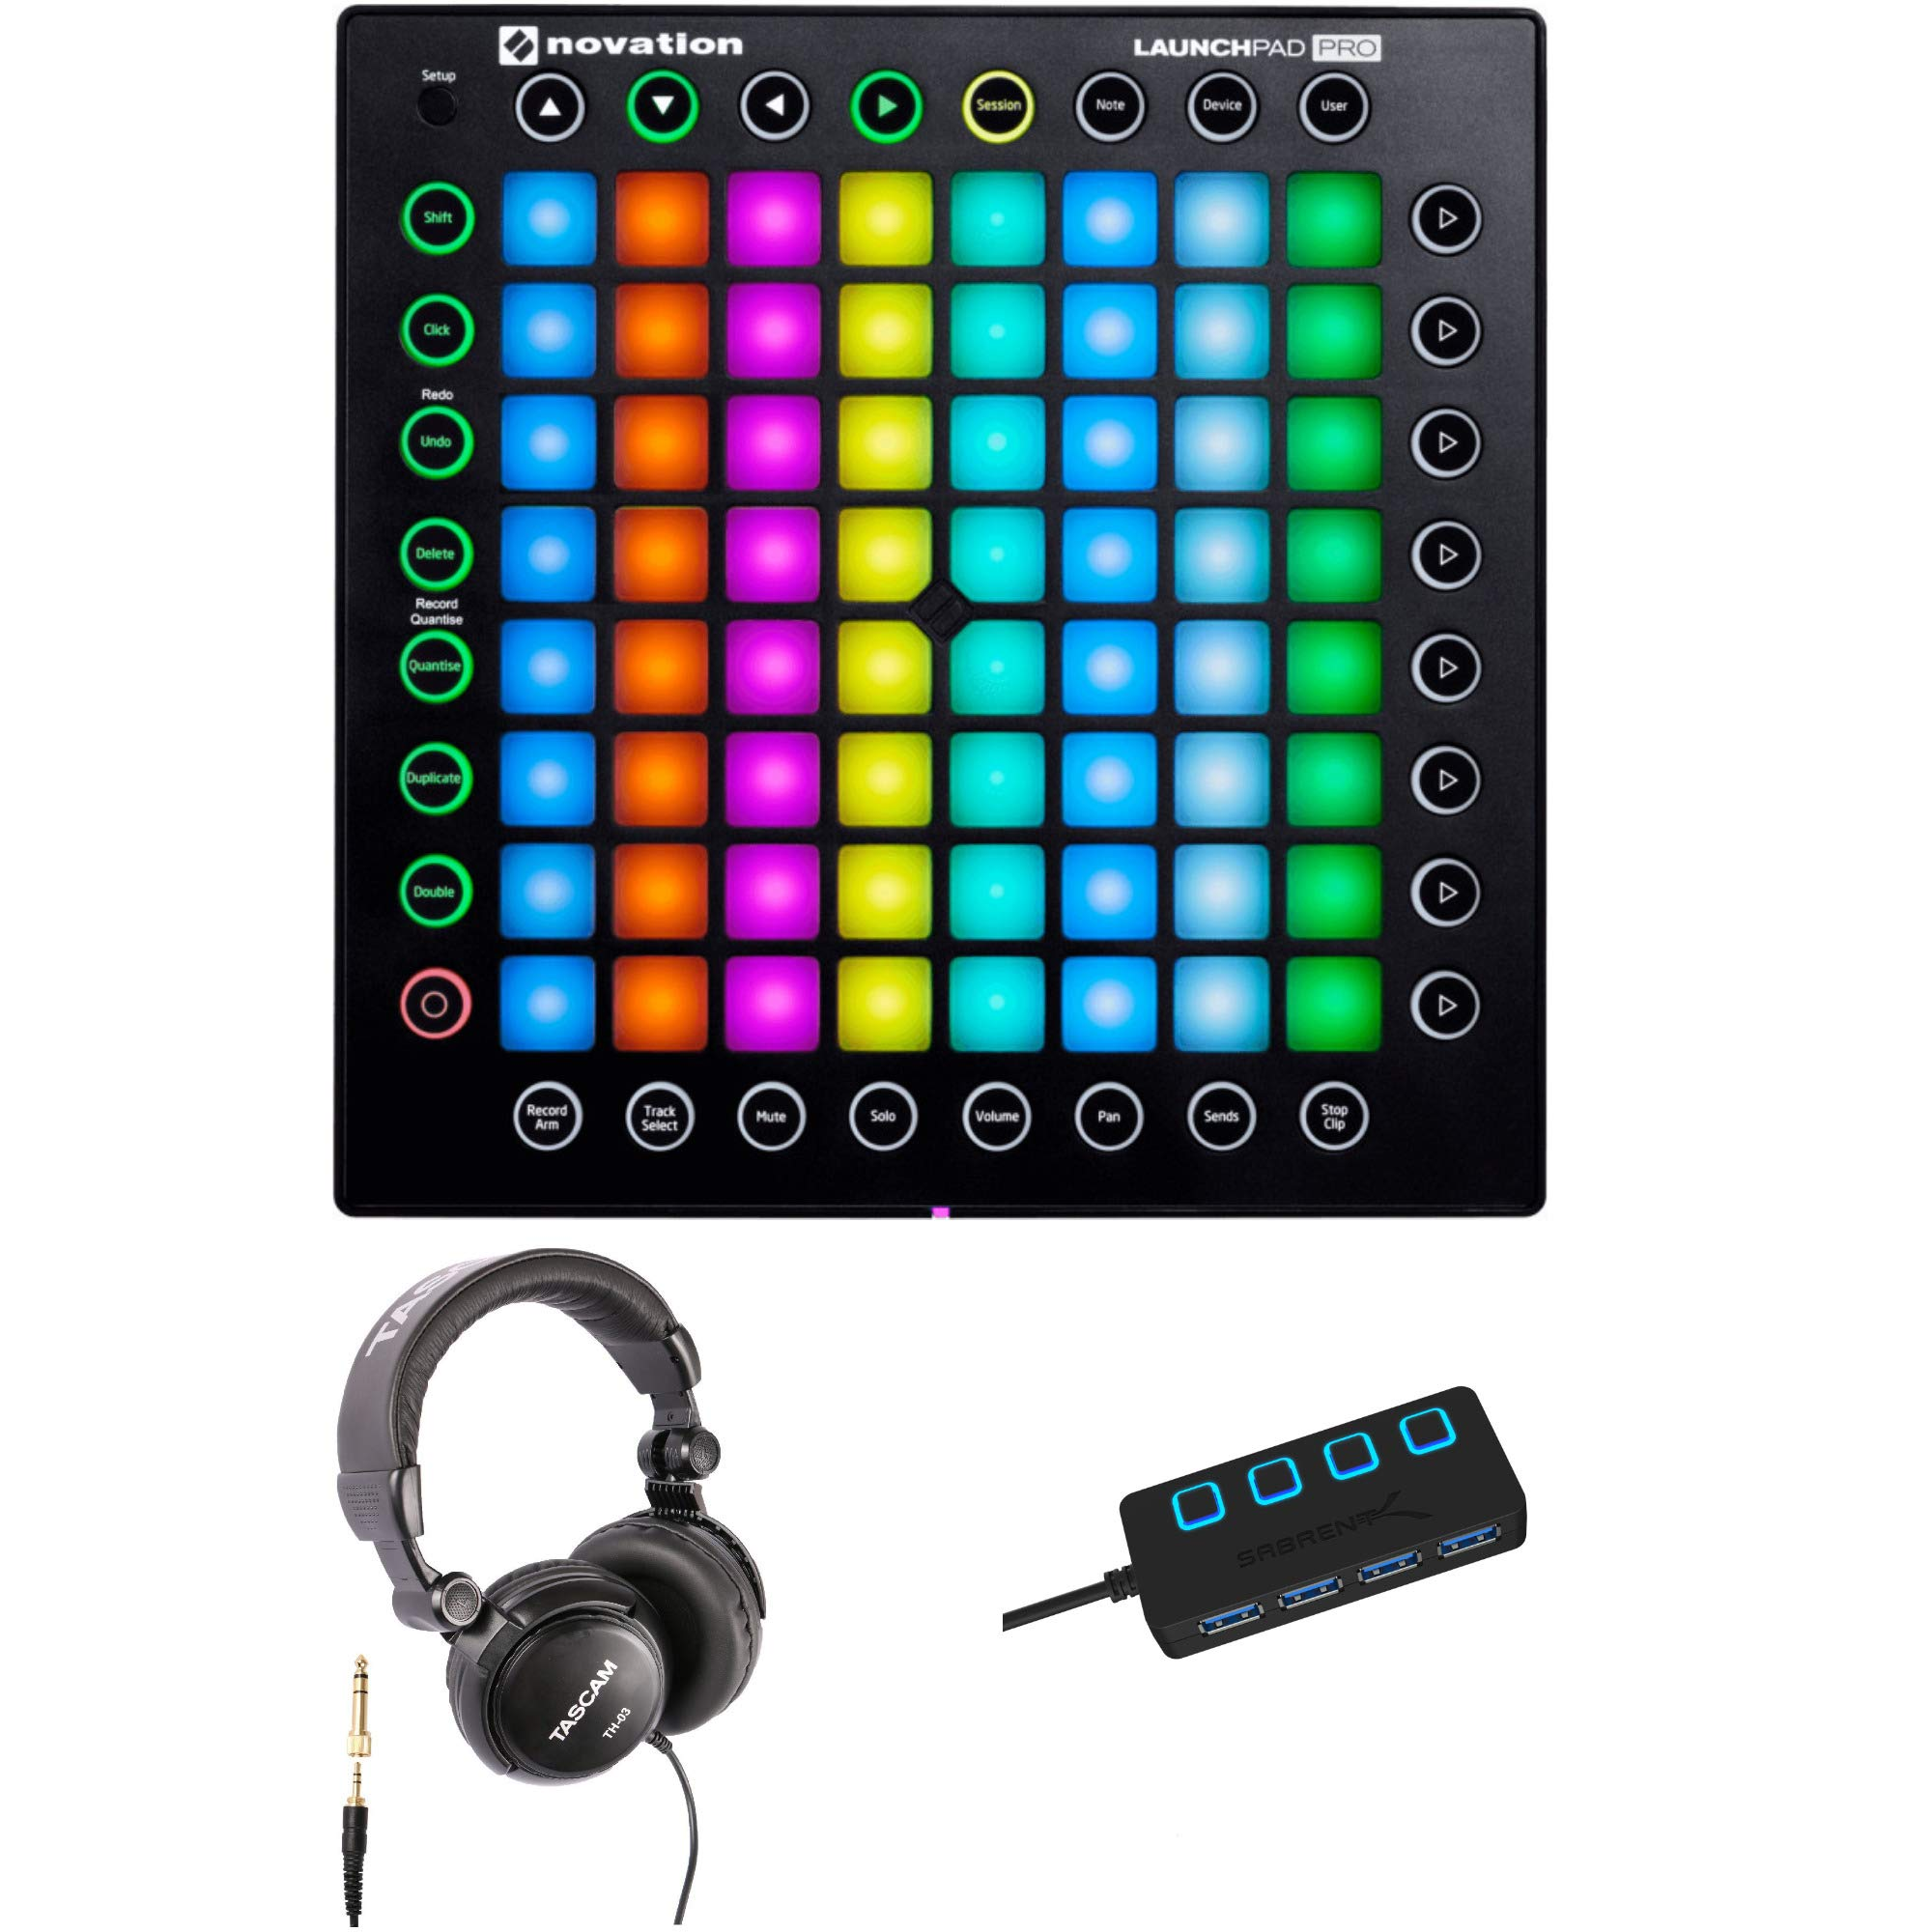 Novation Launchpad Pro USB MIDI Ableton Live Controller with Headphones and 4-Port 3.0 USB HUB